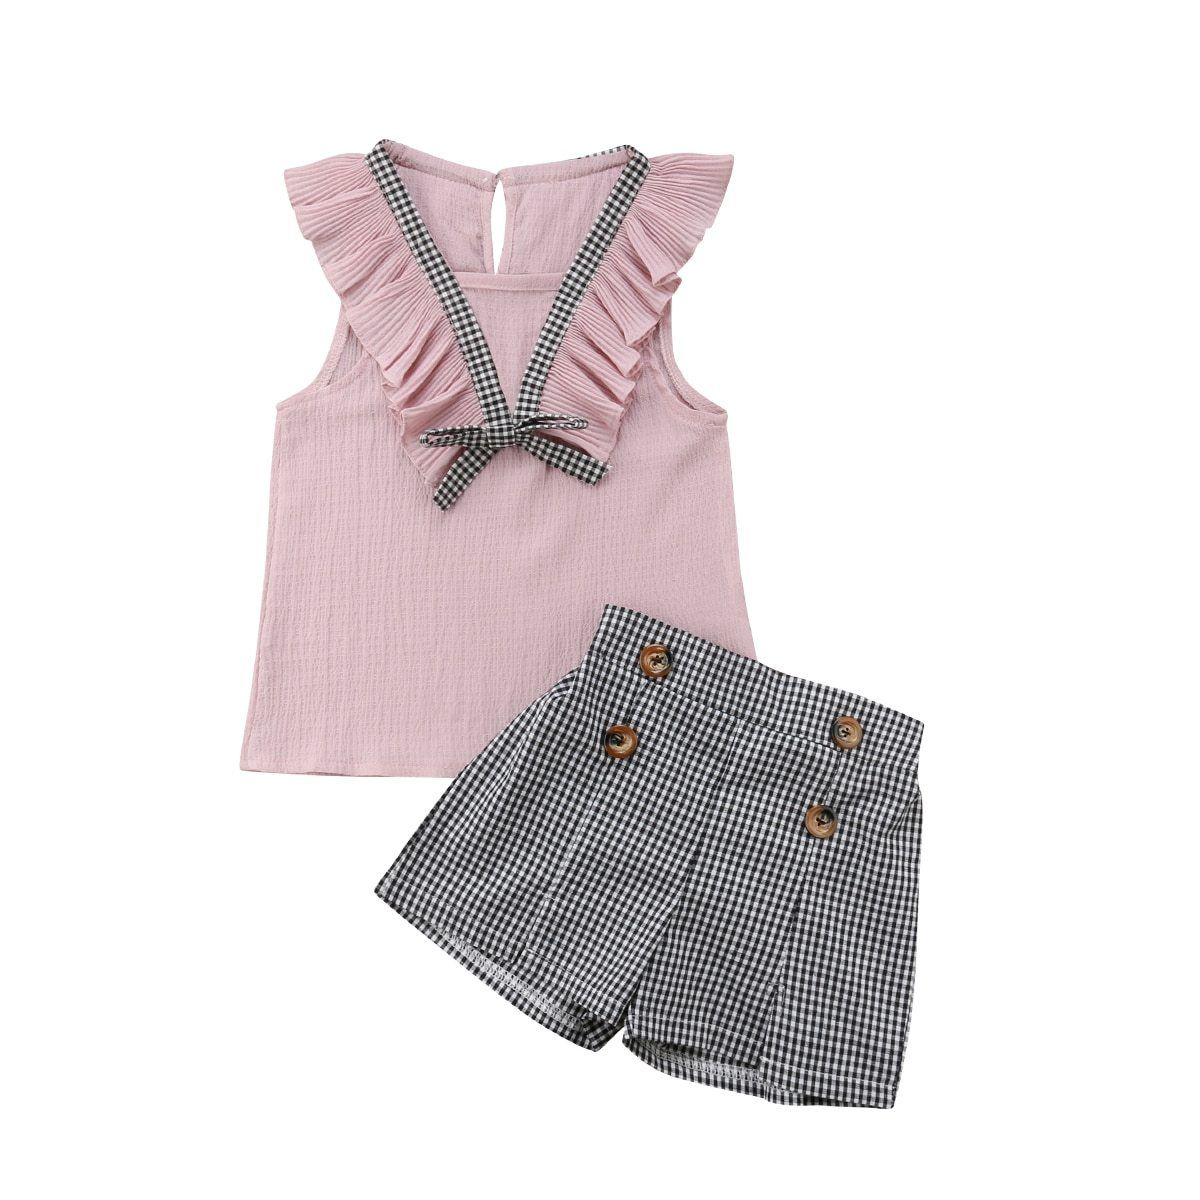 Pink Plaid Set - The Trendy Toddlers